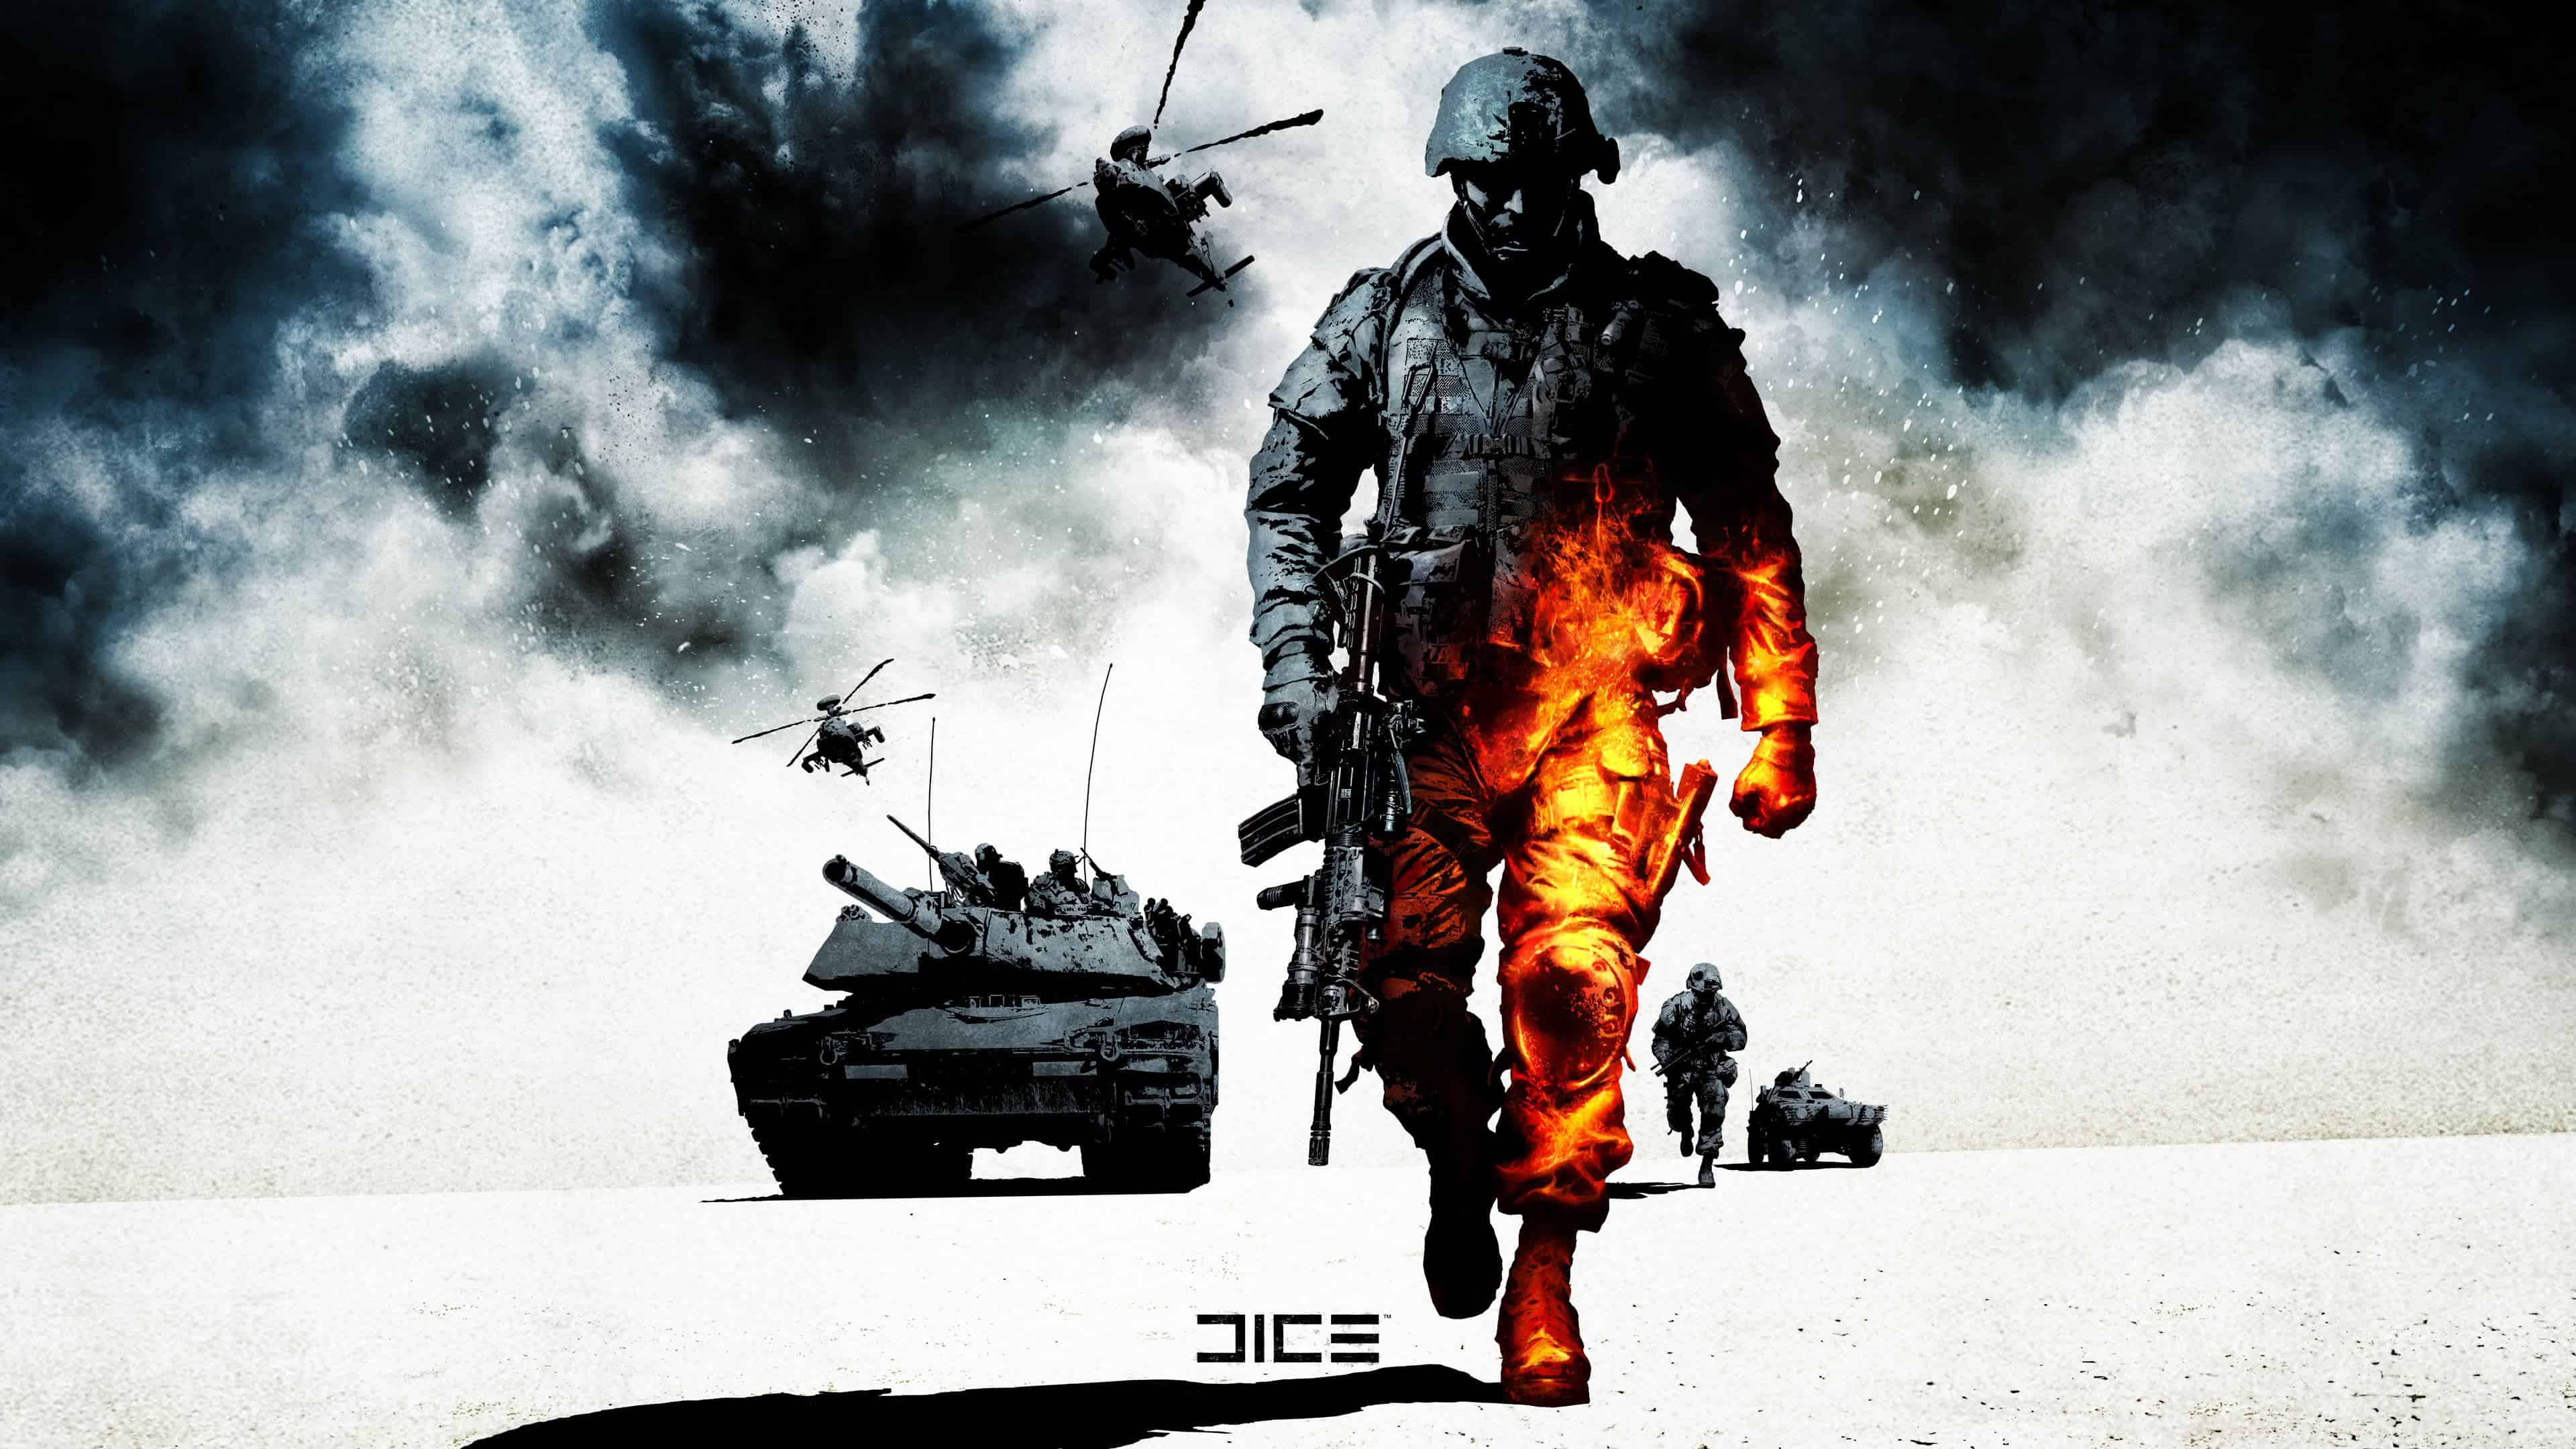 Battlefield Bad Company 2 Key Art On Behance Indian - Battlefield Bad Company 2 , HD Wallpaper & Backgrounds